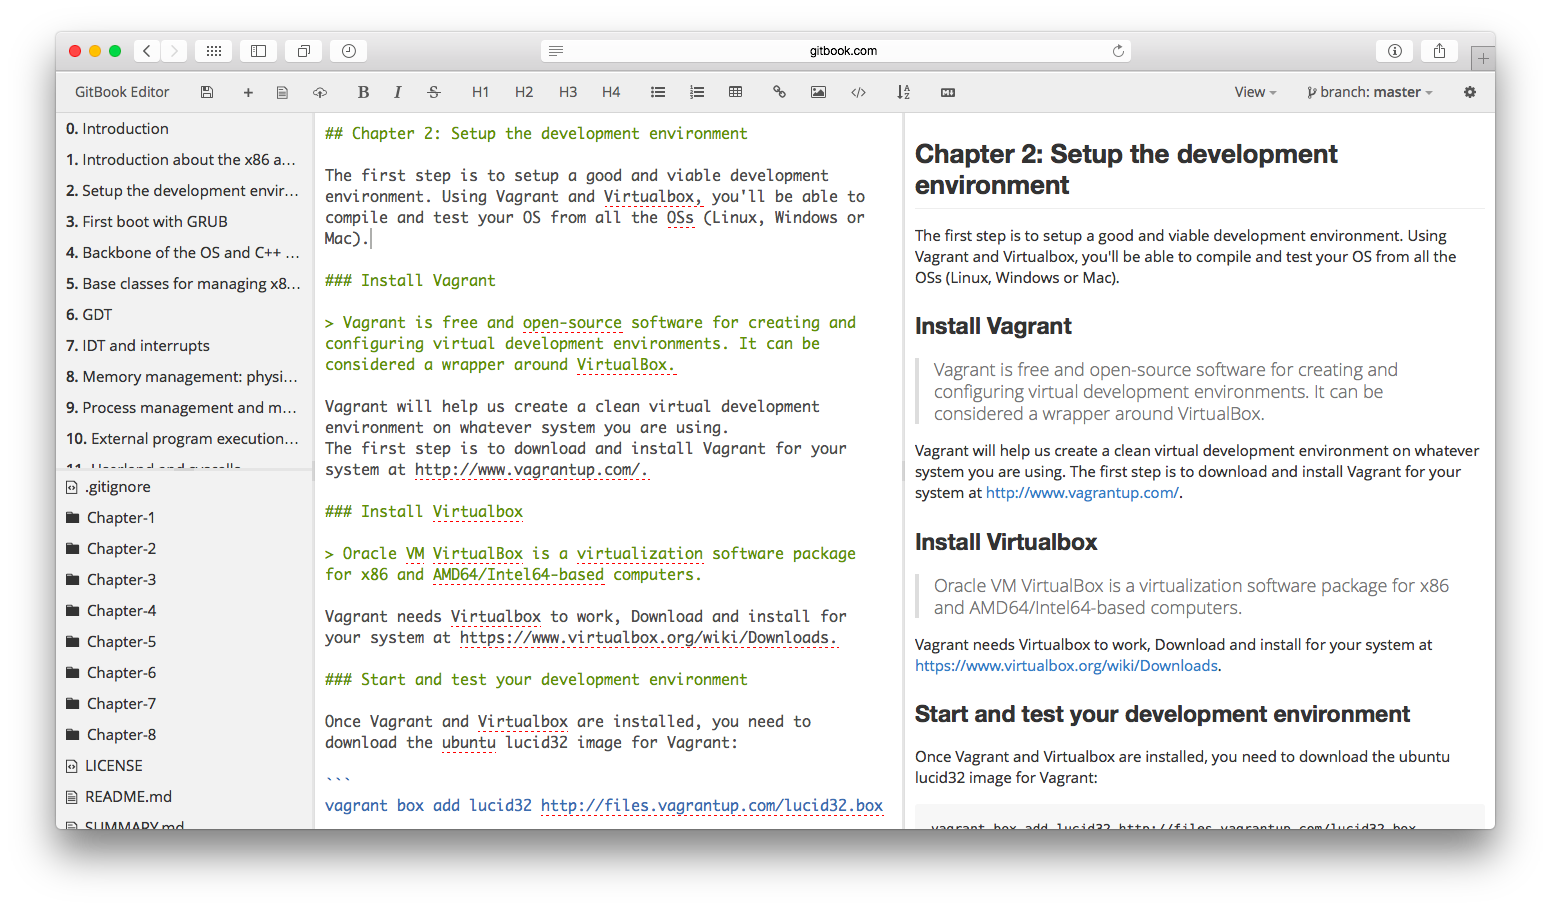 GitBook WebEditor screenshot